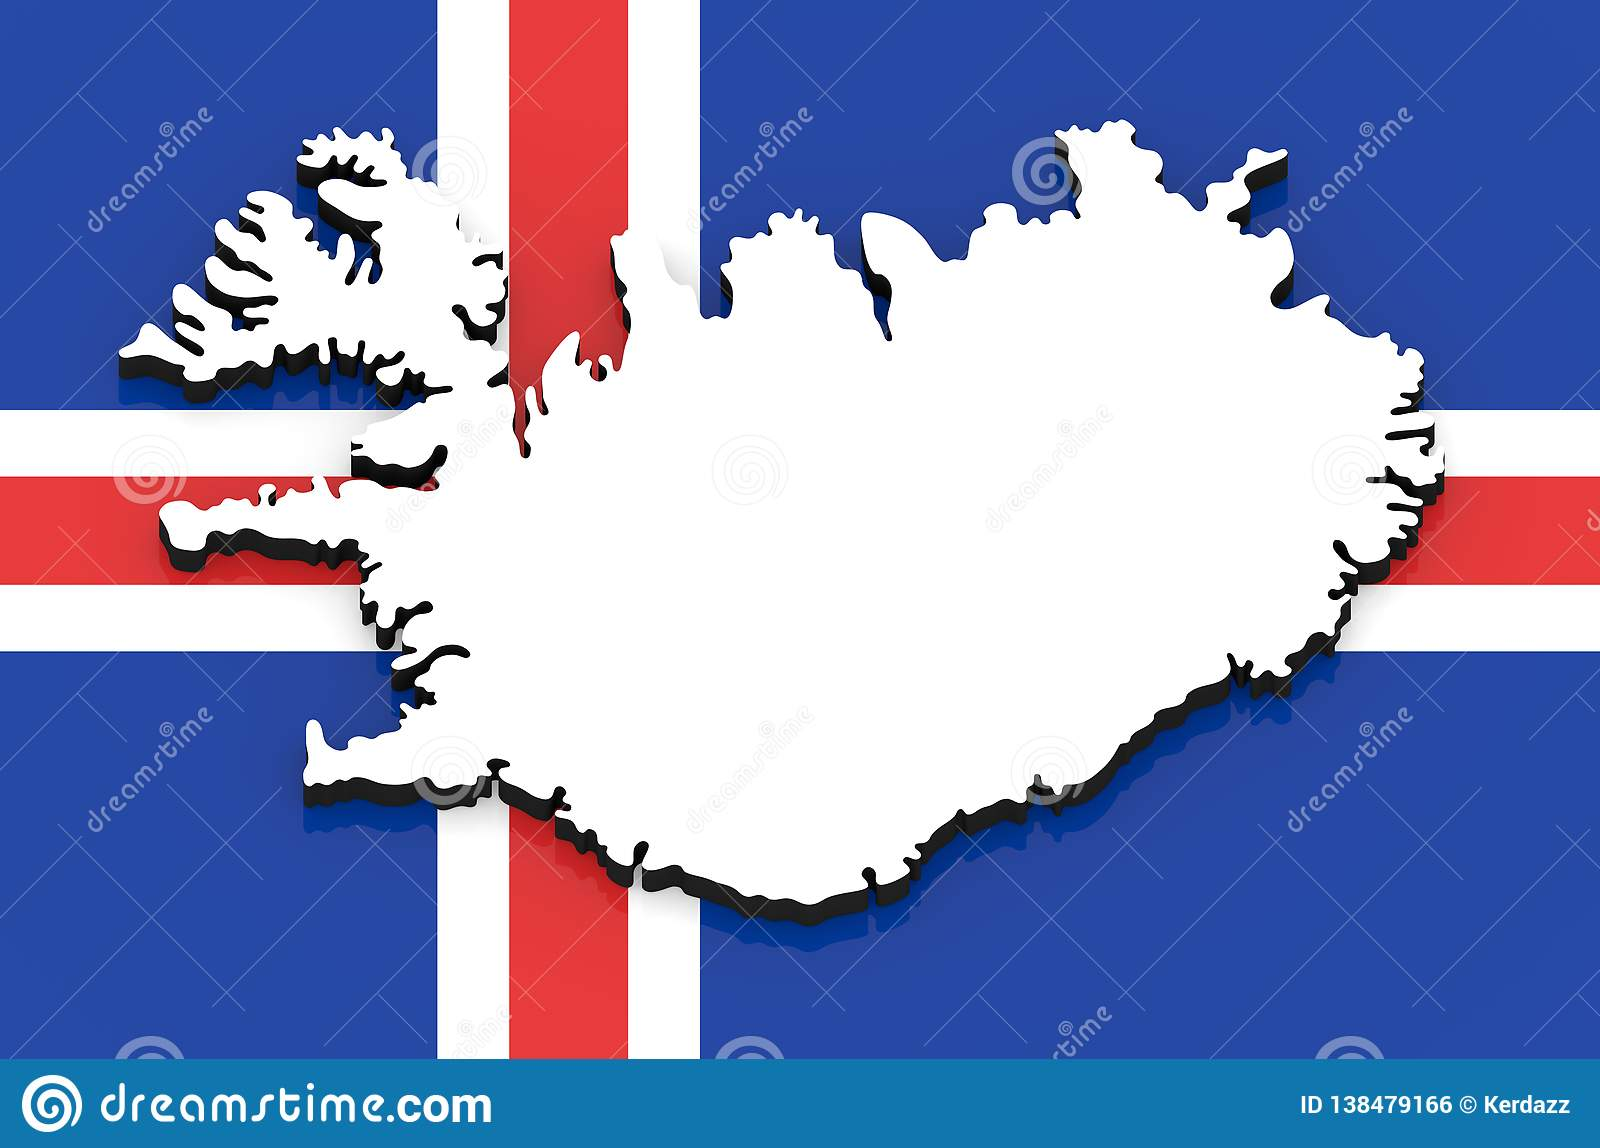 3D Map Of Iceland On The National Flag Stock Illustration ... Iceland On A Map on iceland mountains map, iceland map by christiane engel, iceland scandinavia europe, iceland map black and white, iceland physical map, iceland on globe, iceland flag, iceland map with map key, iceland travel, iceland country map, iceland road map, iceland map with volcanoes, iceland global map, world map, iceland topographic map,